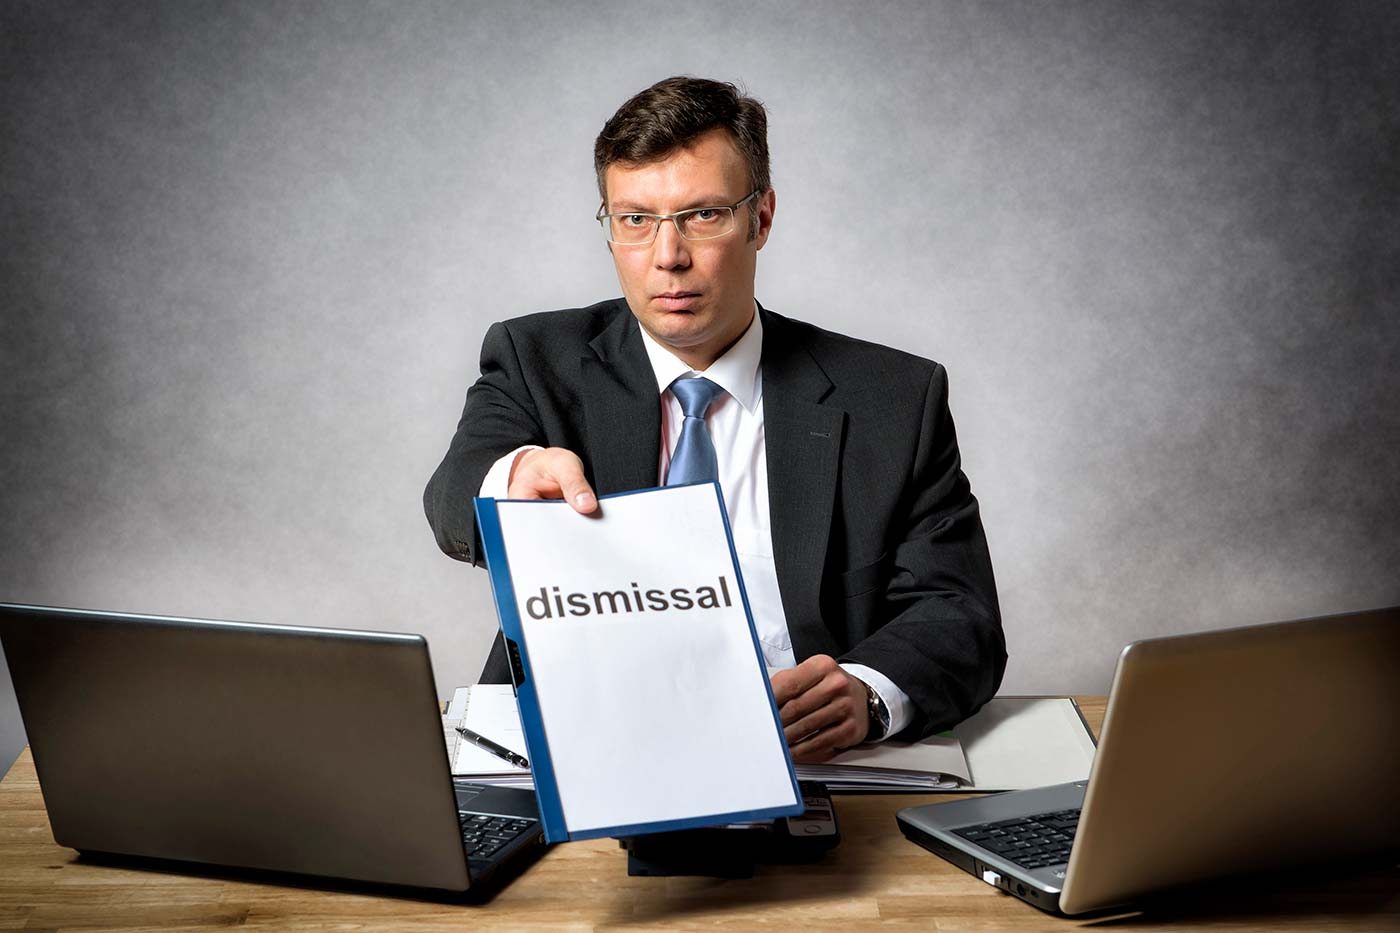 I want to appeal against instant dismissal decision, what do I do?